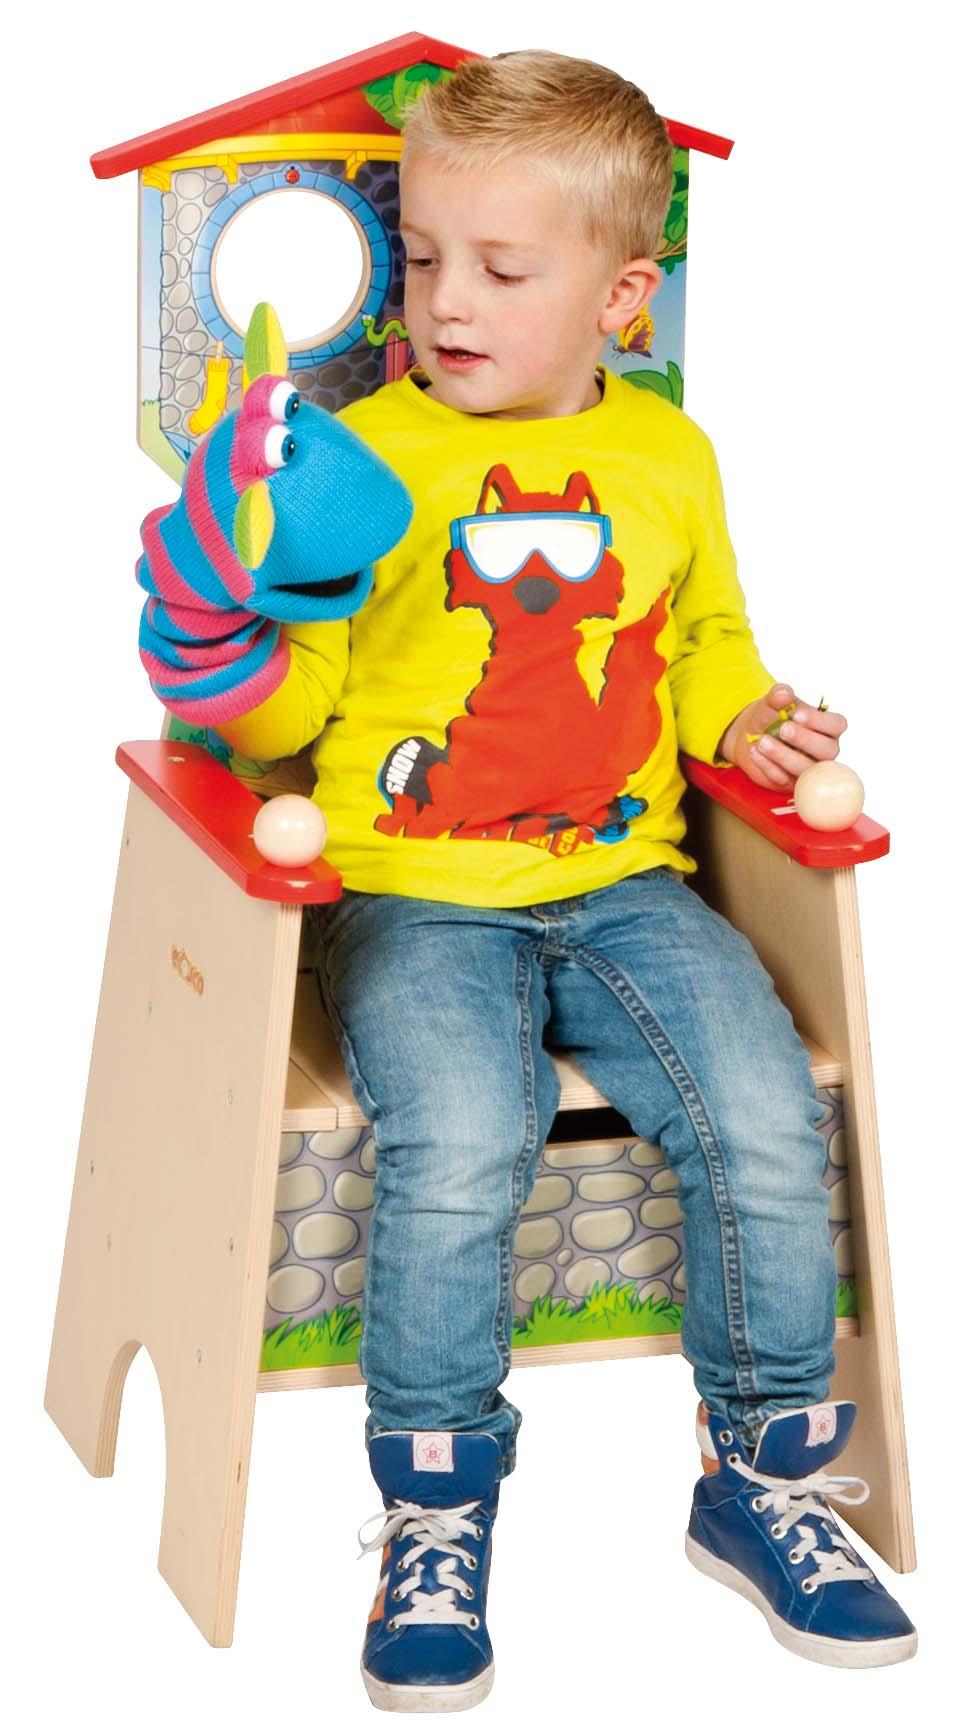 Wooden story chair